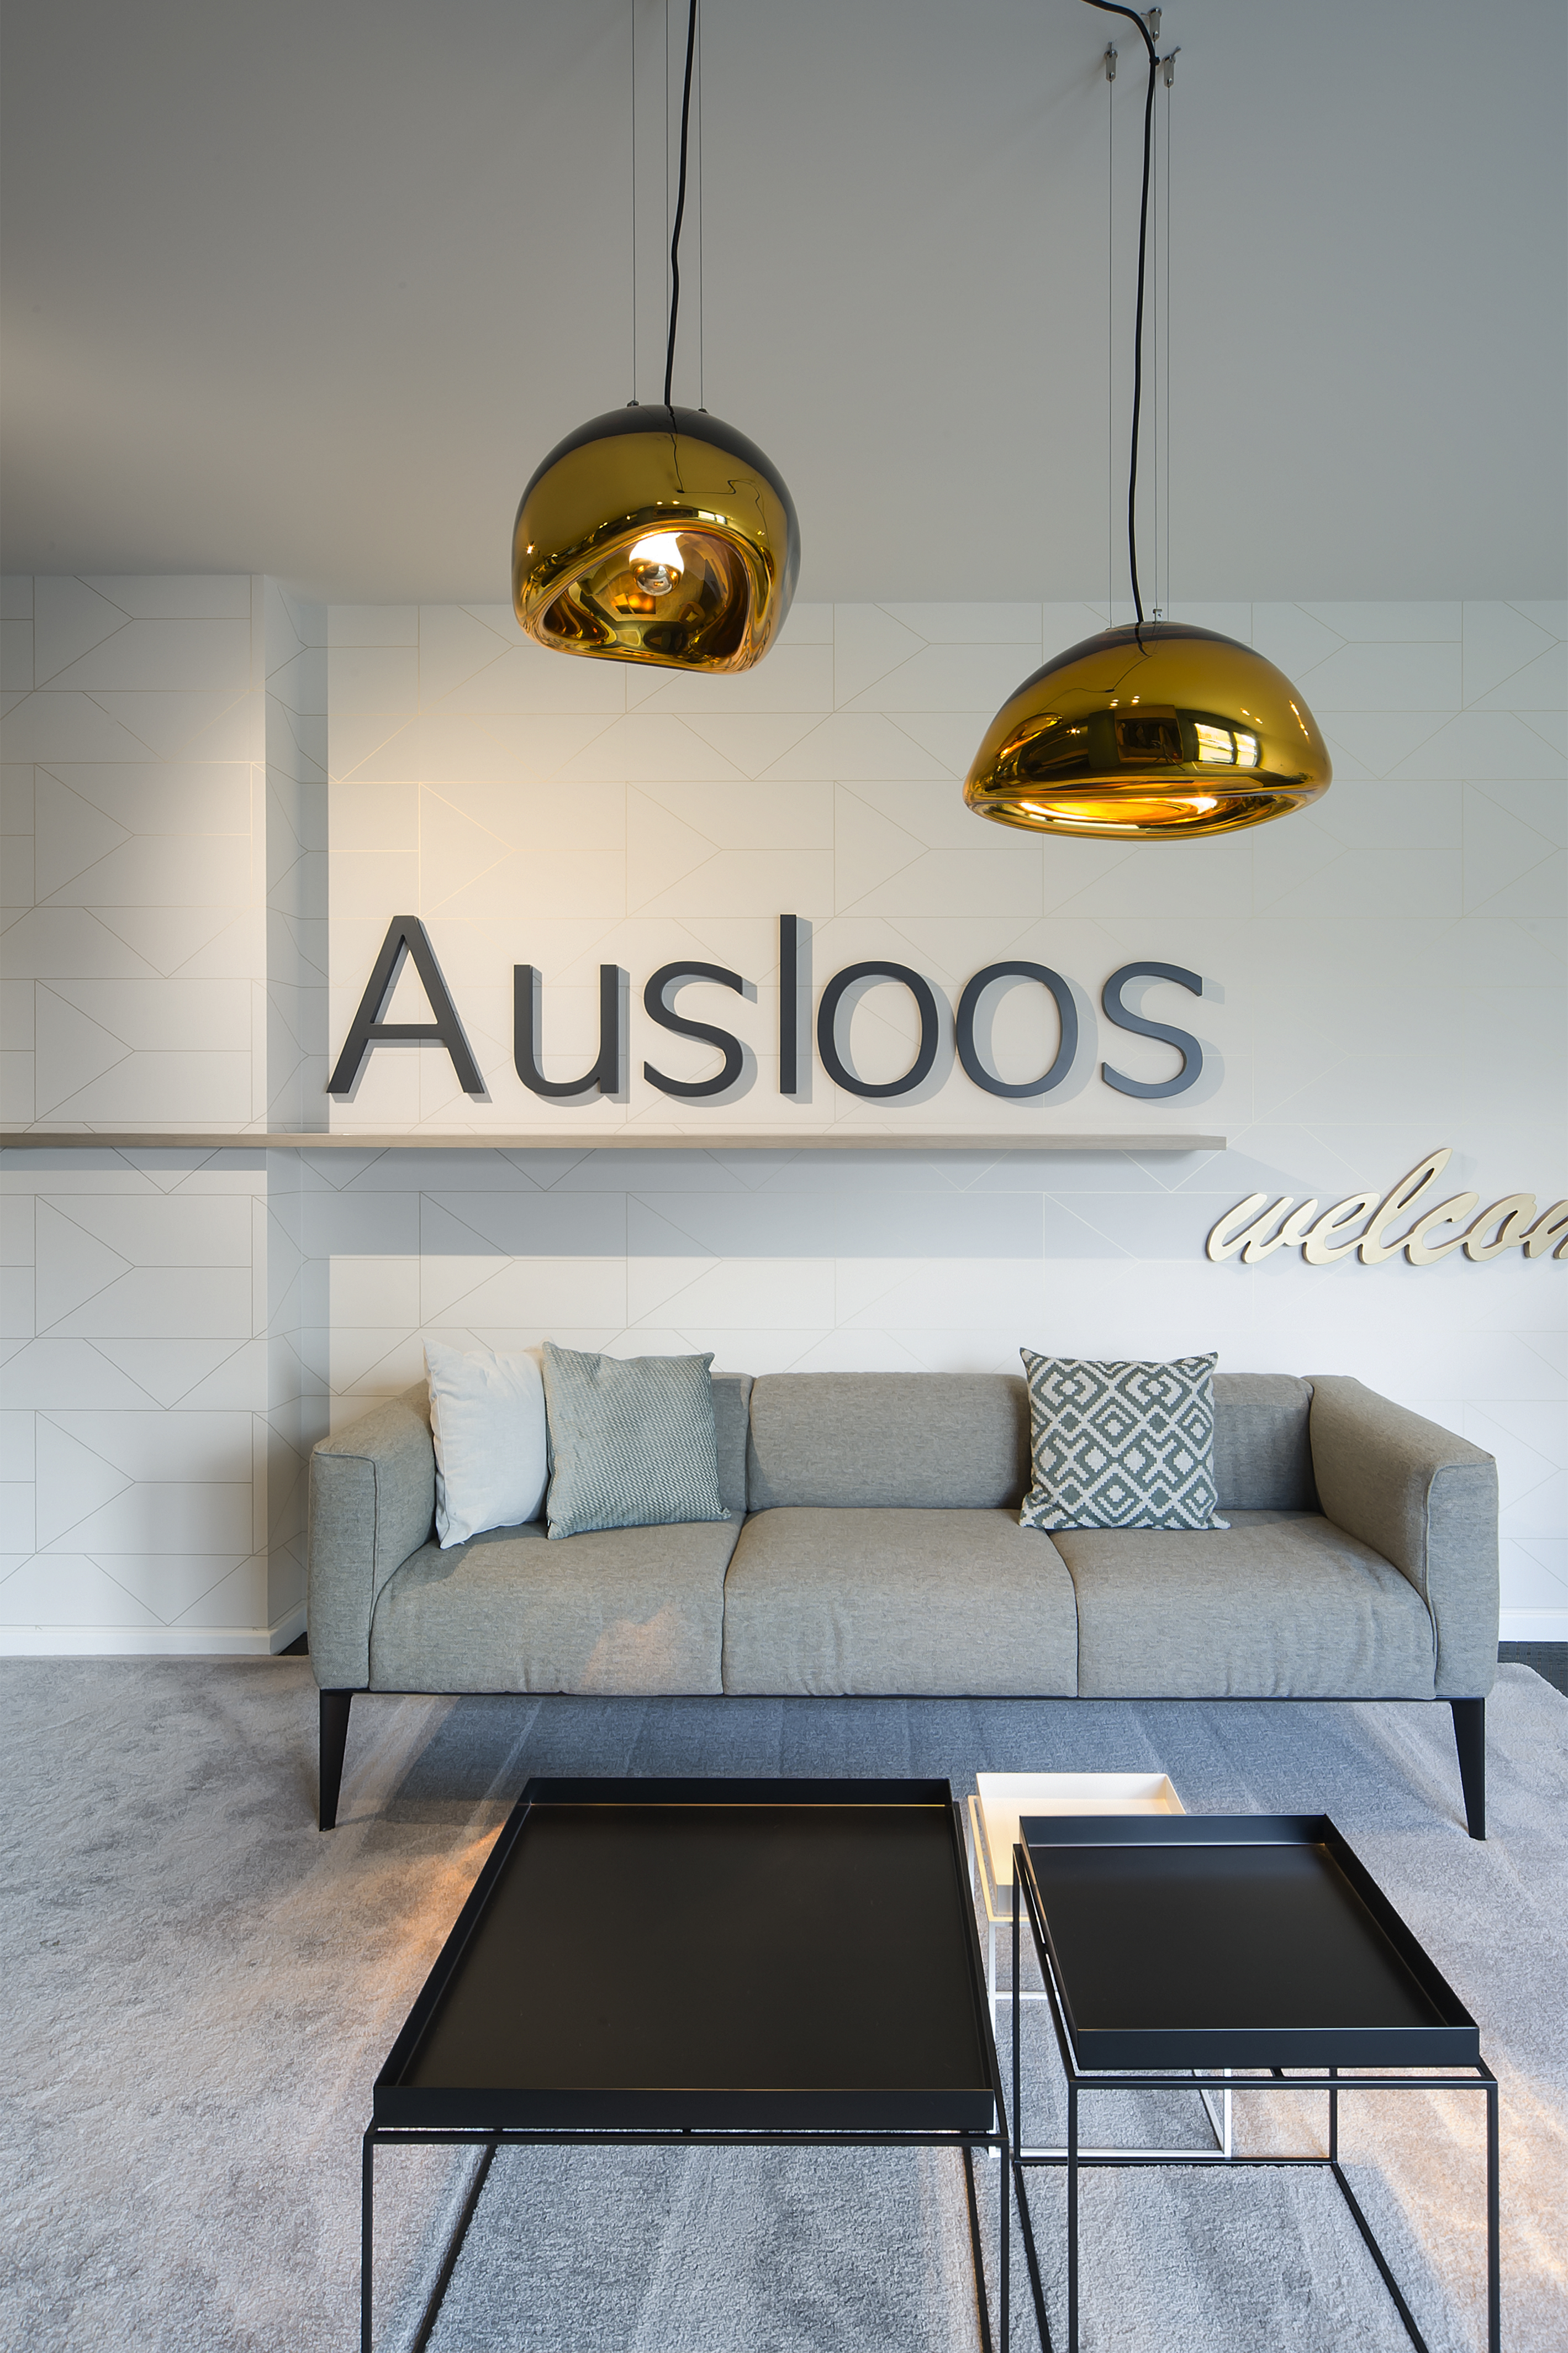 Ausloos office leuven